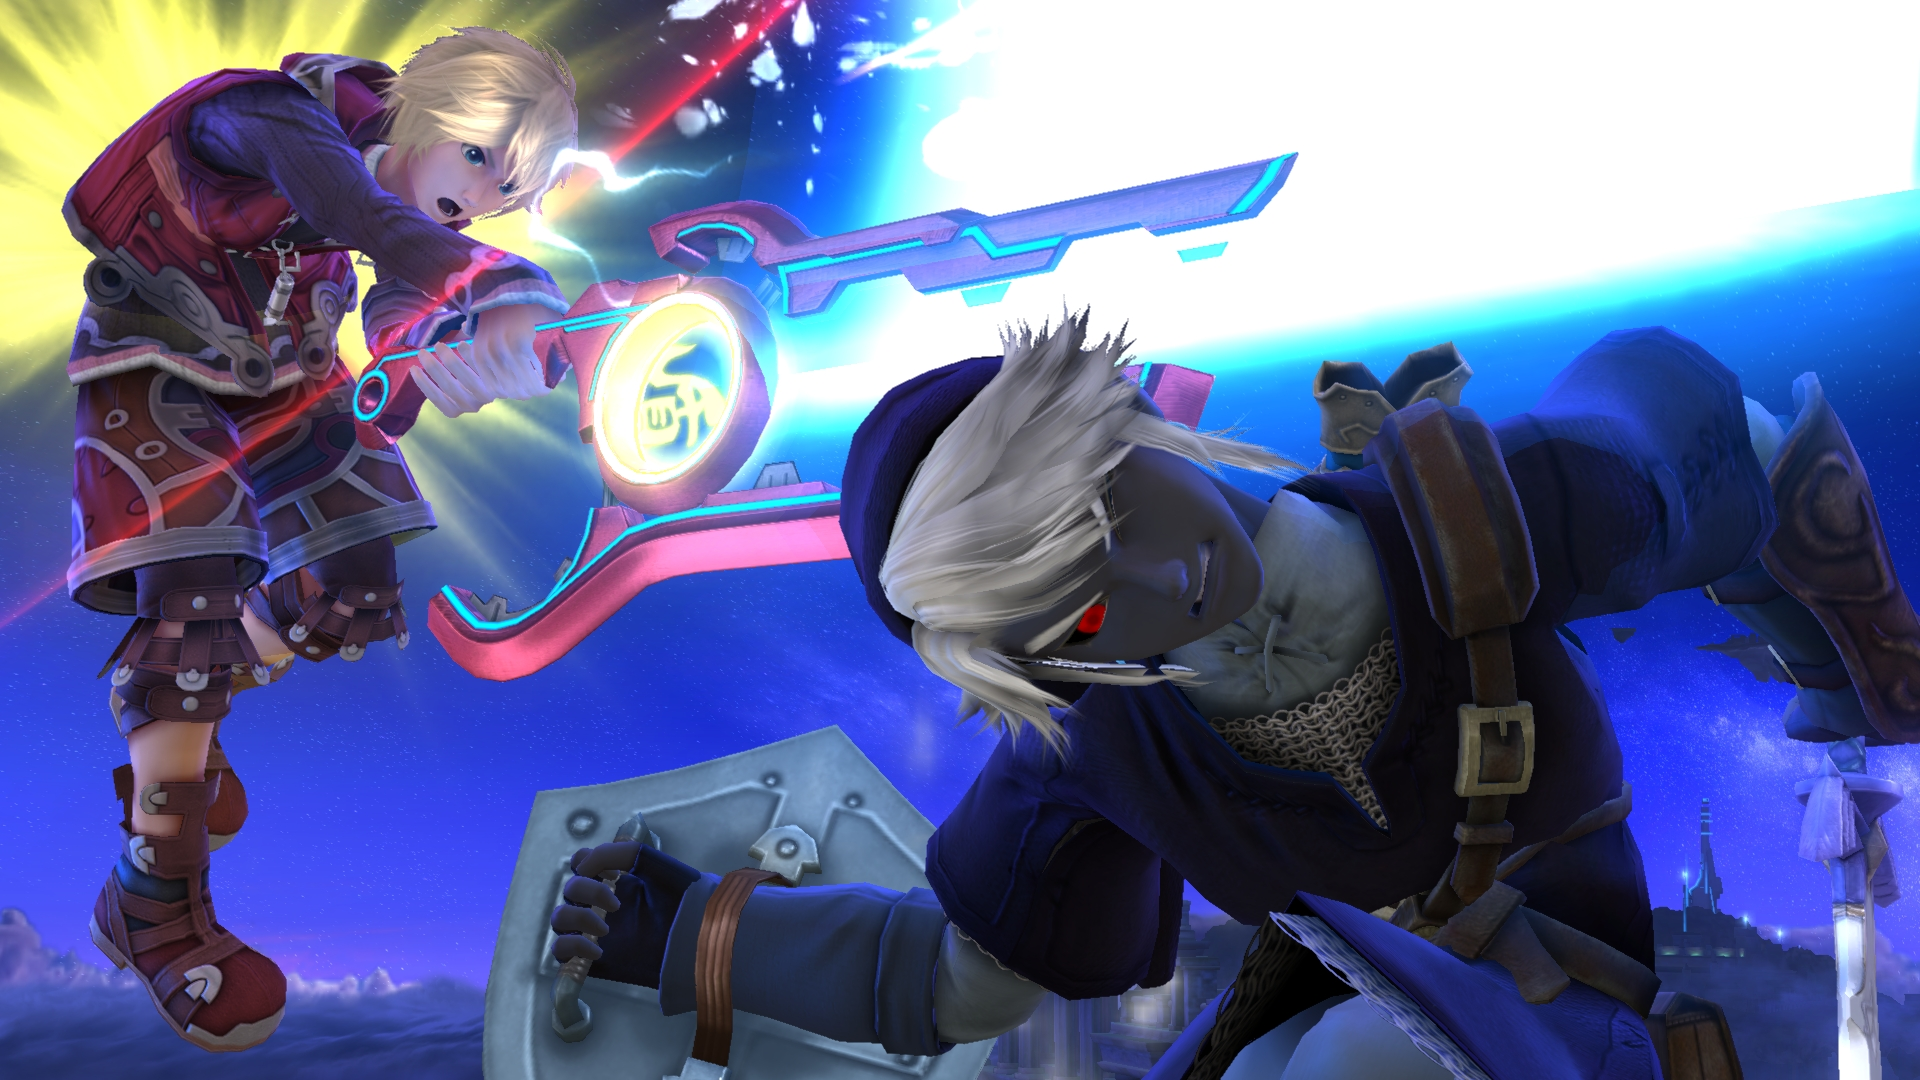 Super-Smash-Bros-for-Wii-U-Shulk-Announcement-Trailer-02 ...